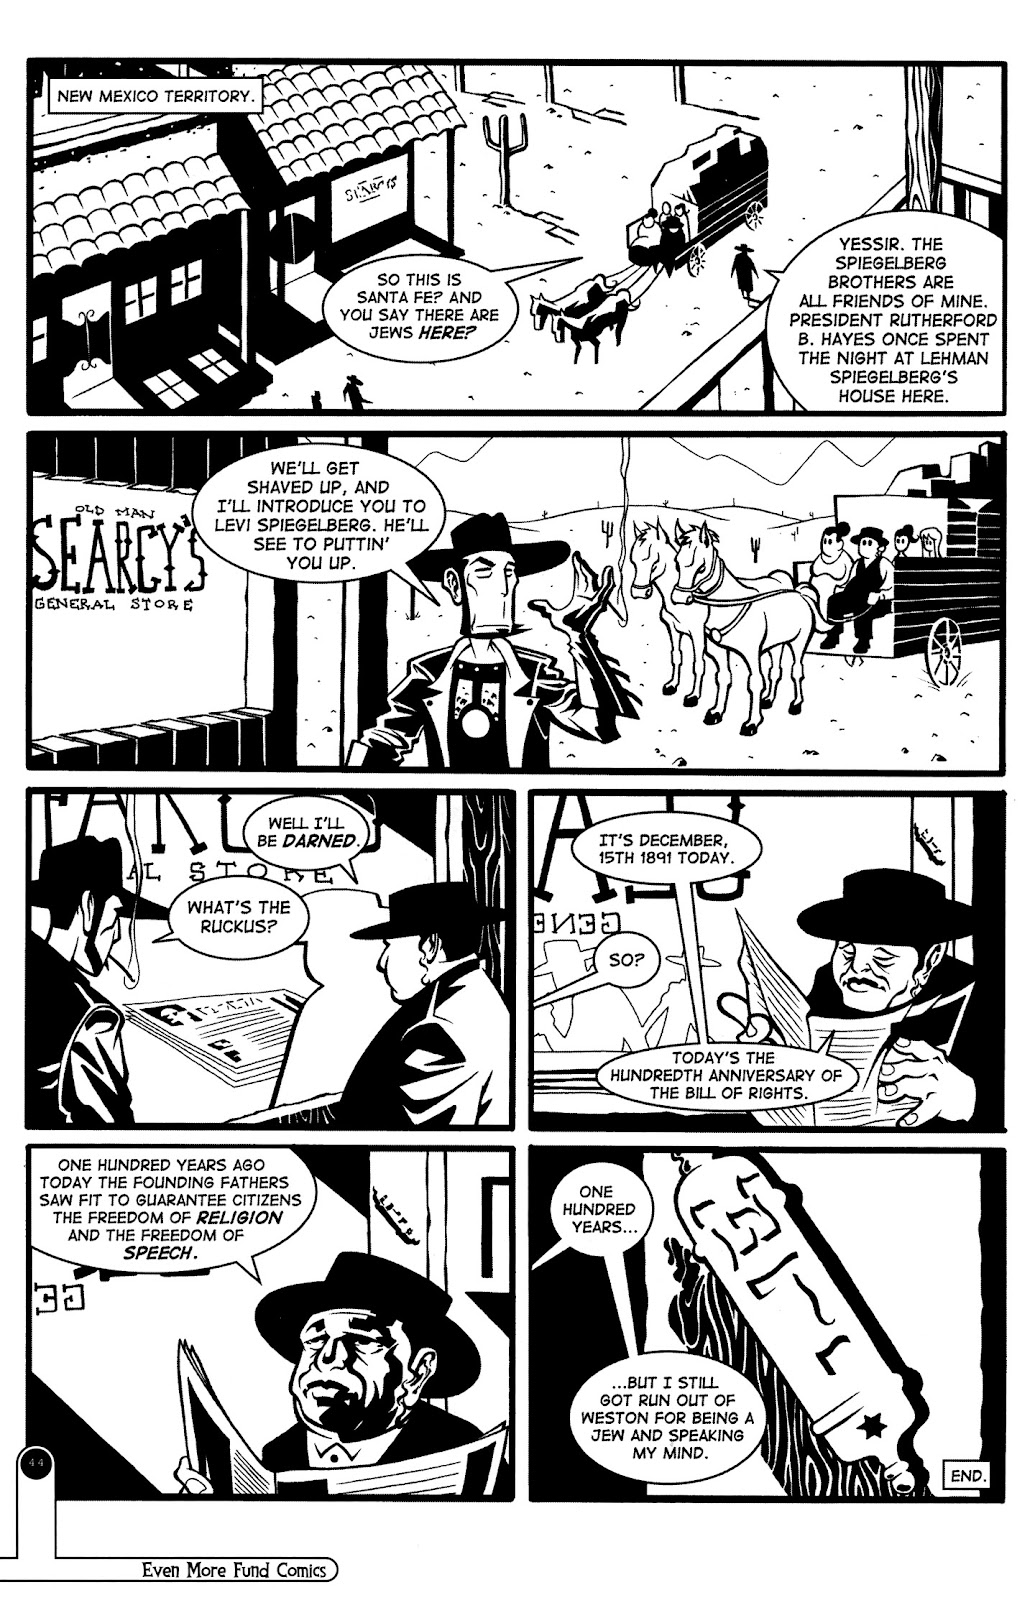 Read online Even More Fund Comics comic -  Issue # TPB (Part 1) - 44